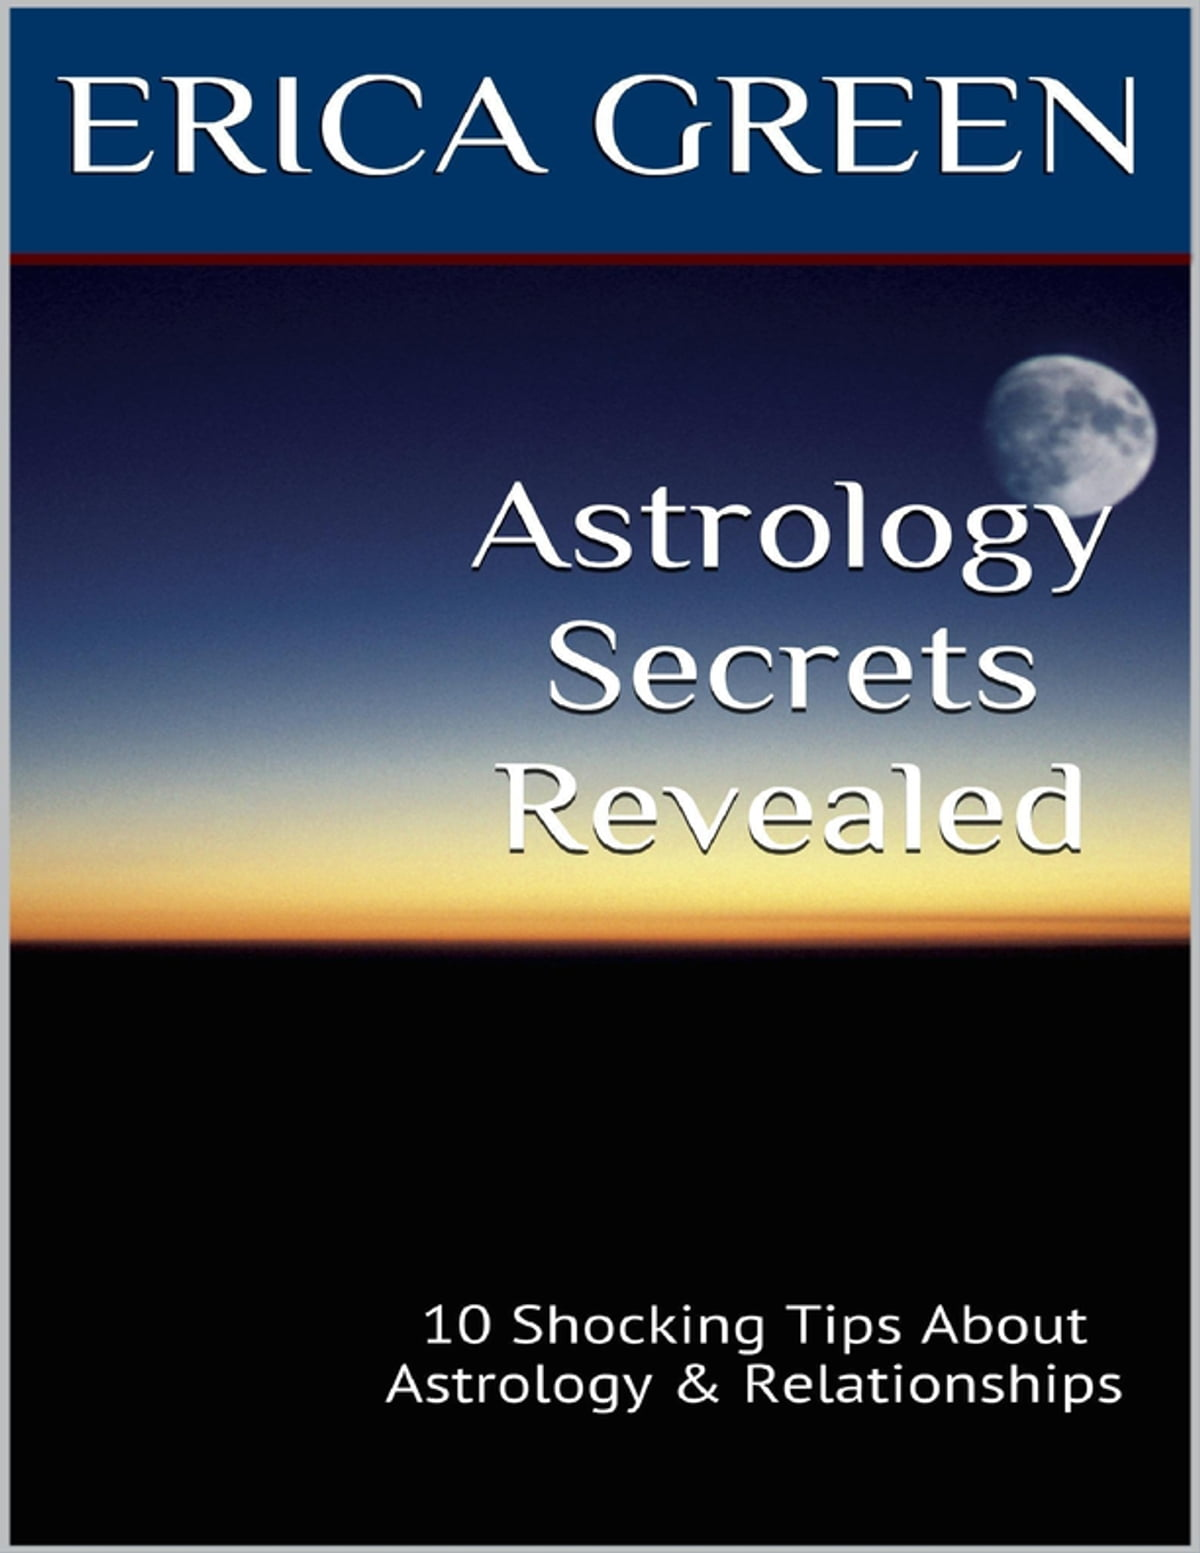 Astrology Secrets Revealed: 10 Shocking Tips About Astrology and  Relationships eBook by Erica Green - Rakuten Kobo